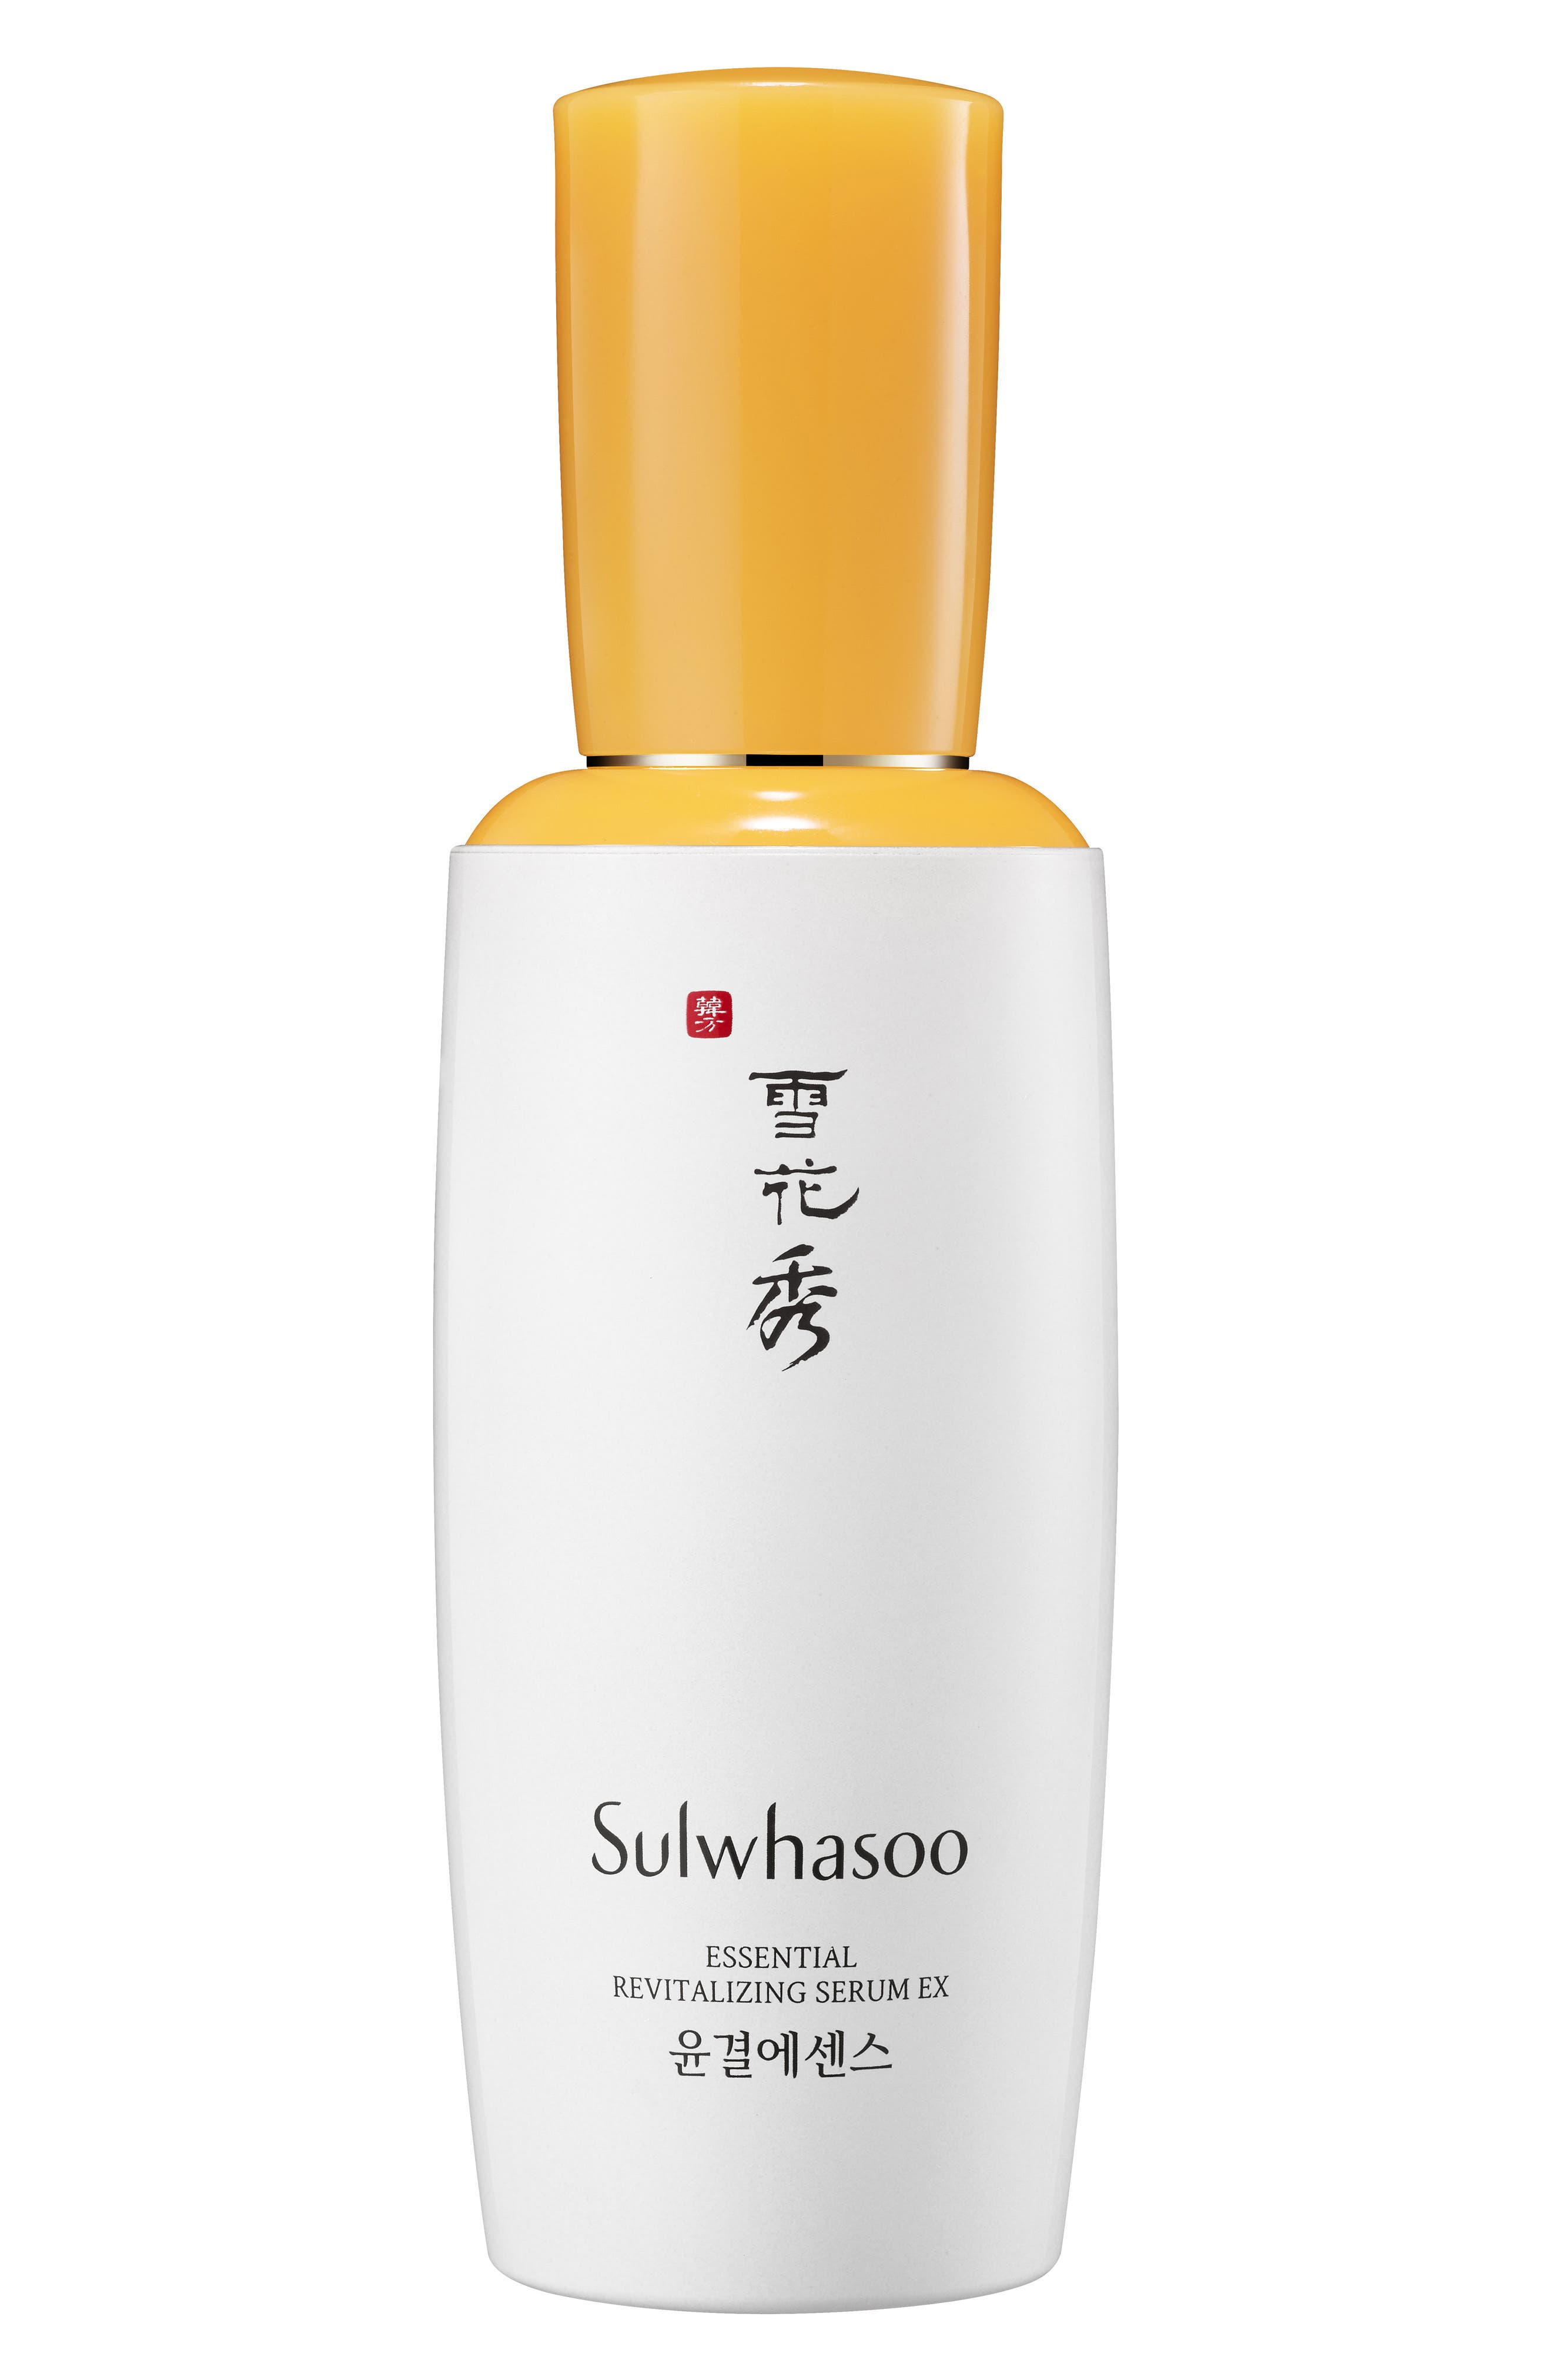 Main Image - Sulwhasoo Essential Revitalizing Serum EX